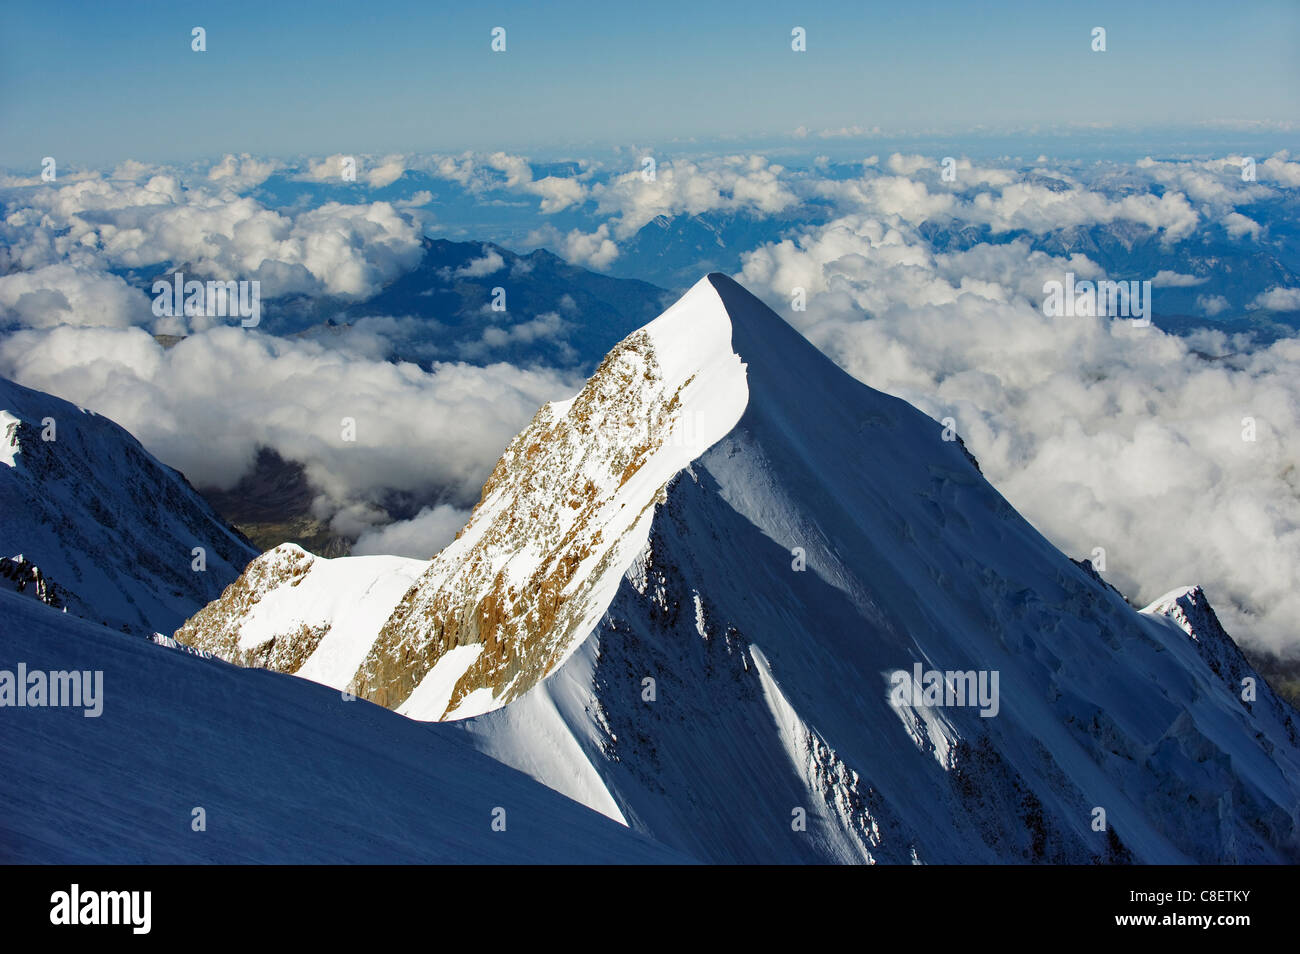 Aiguille de Bionnassay, 4052m, from Mont Blanc, Chamonix, French Alps, France - Stock Image